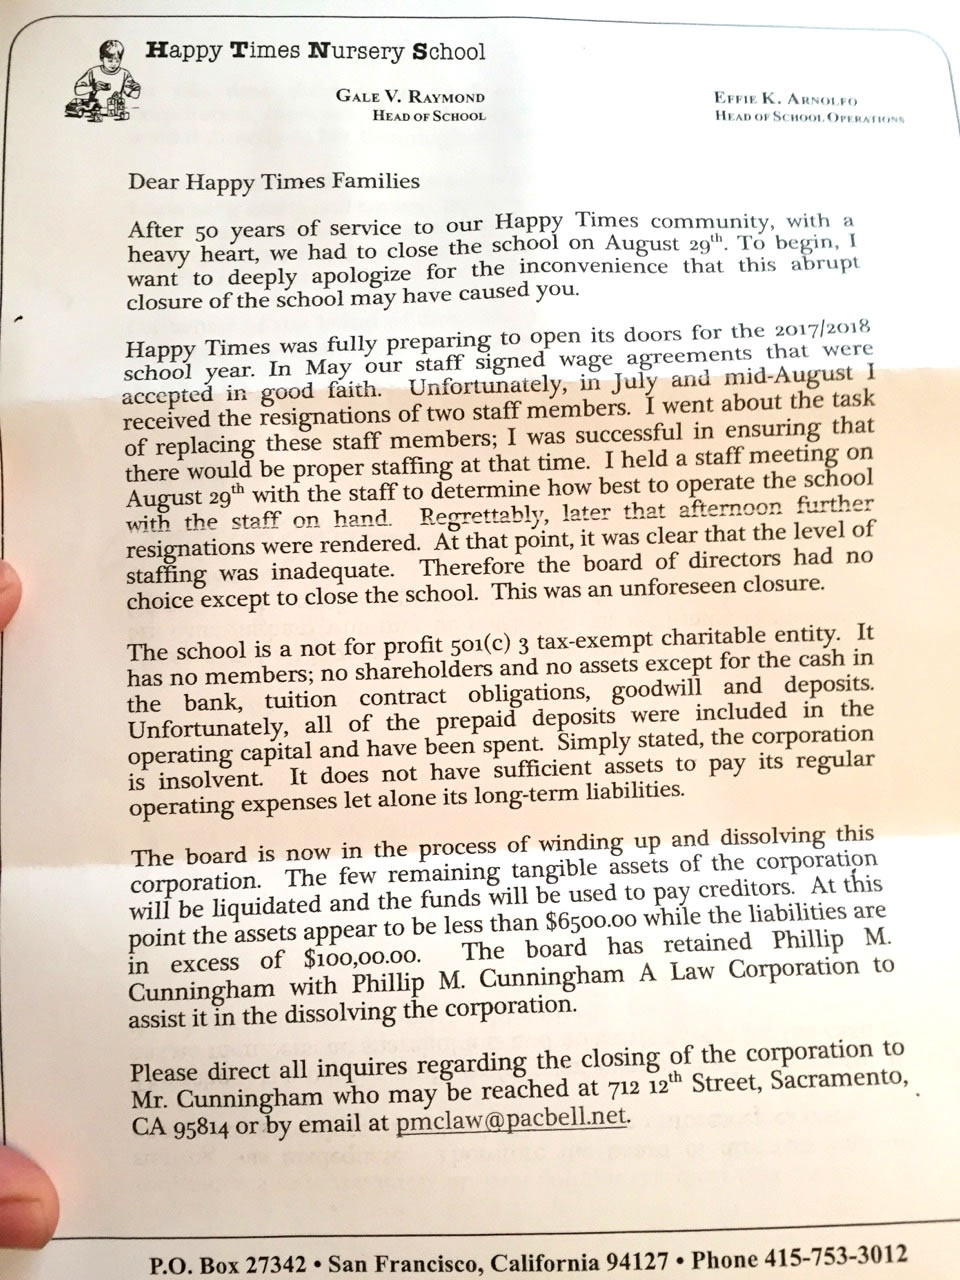 This image taken Thursday, Sept. 28, 2017 shows a letter sent from Happy Times Nursery School to parents in San Francisco.